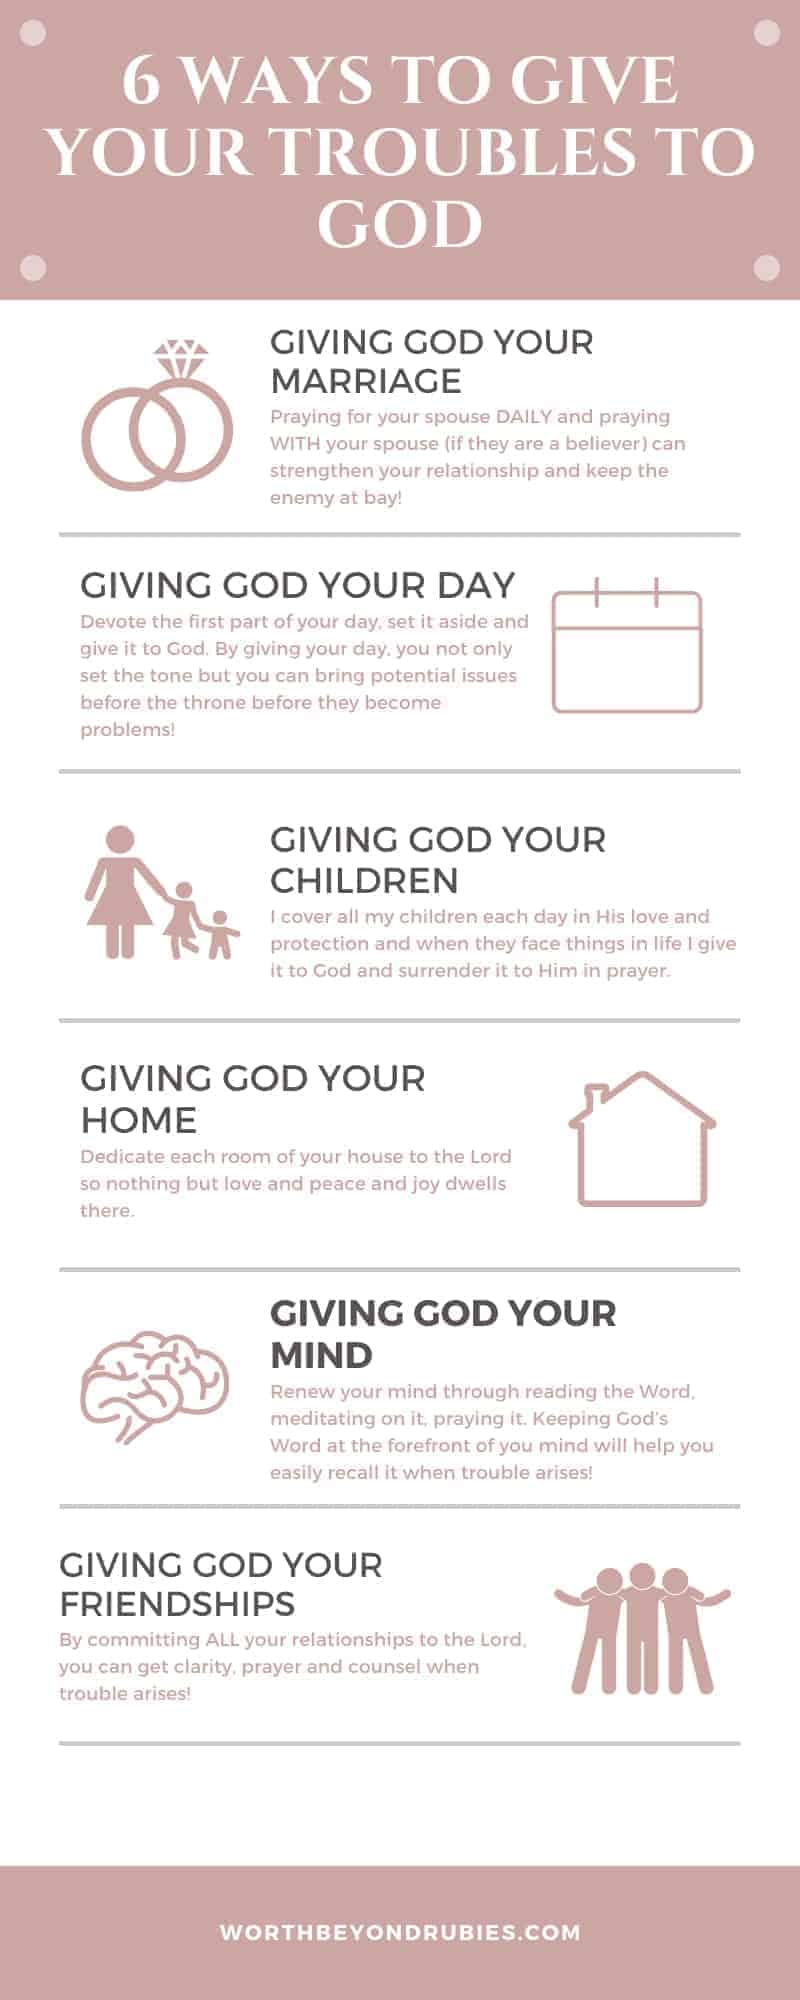 an infographic with 6 ways to give your troubles to God including Giving God Your Marriage, Giving God Your Day, Giving God Your Children, Giving God Your Home. and Giving God Your Friendships